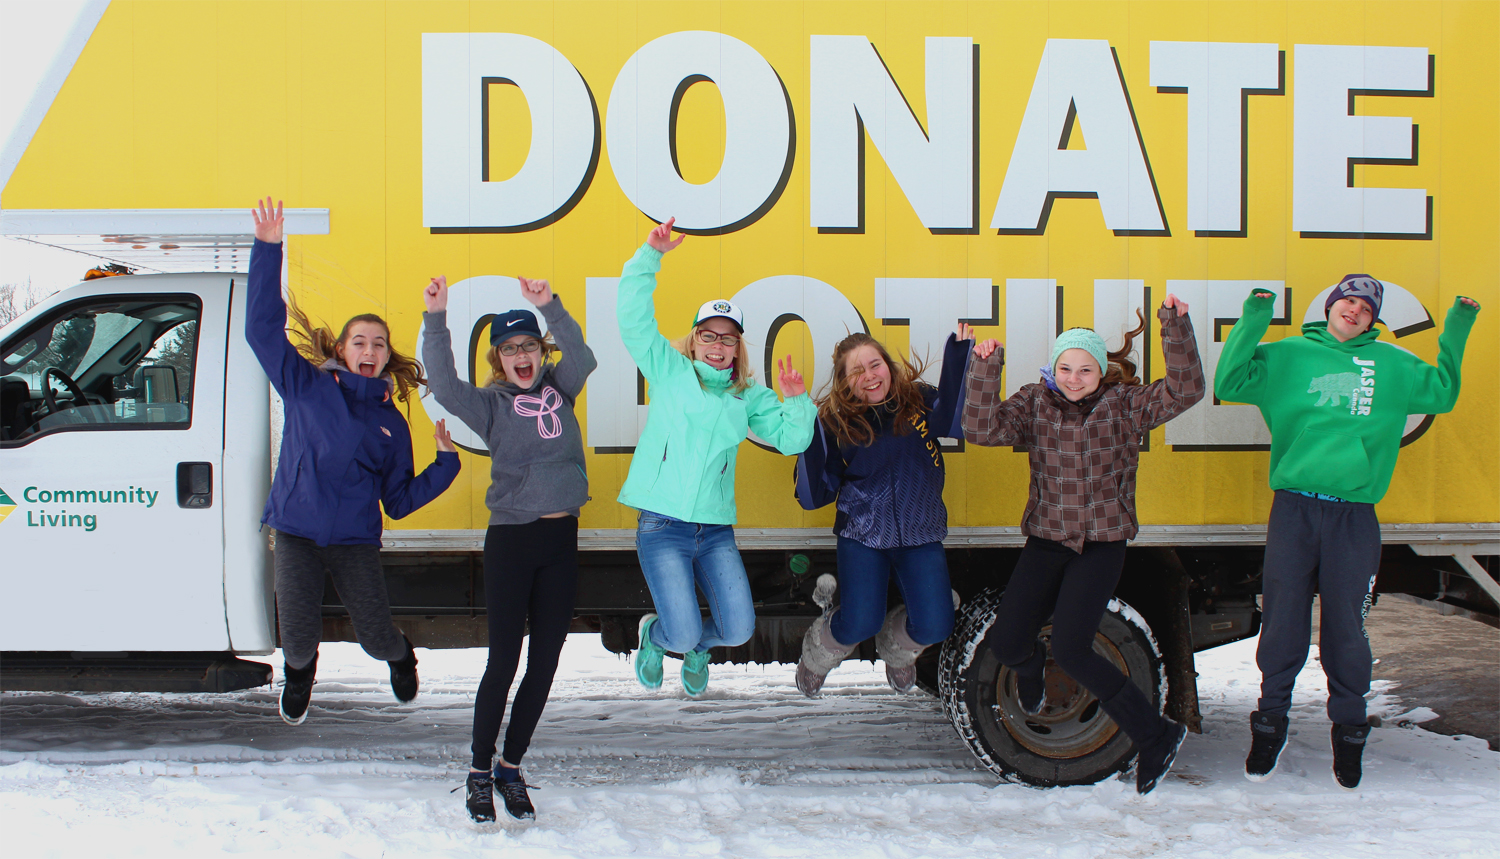 Children jumping in front of yellow truck